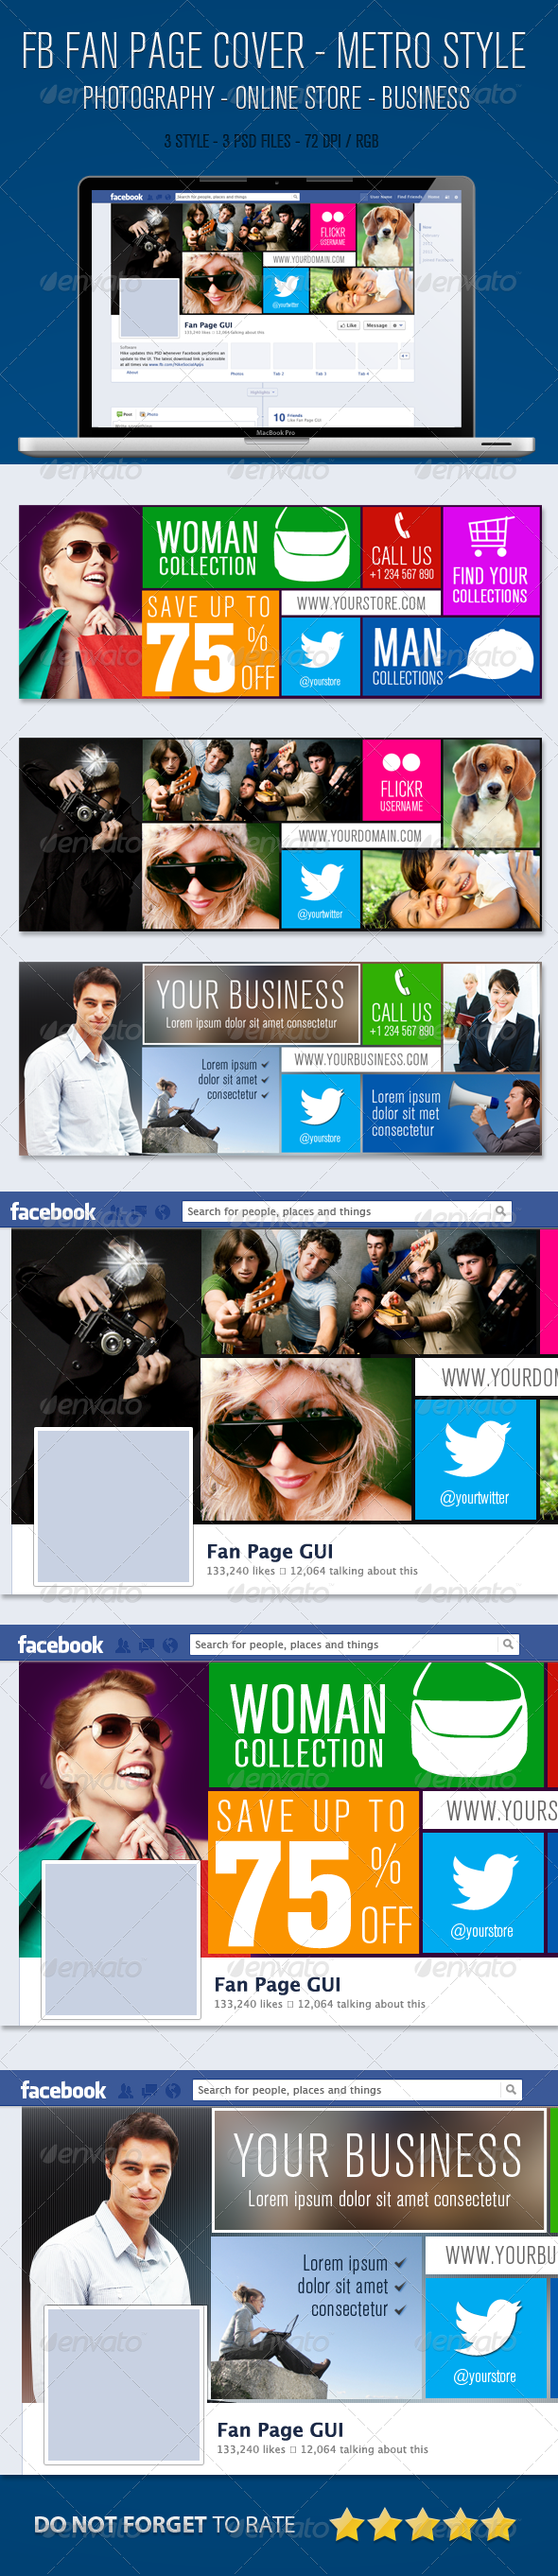 GraphicRiver Facebook Fan Page Timeline Cover Metro Style 5200863